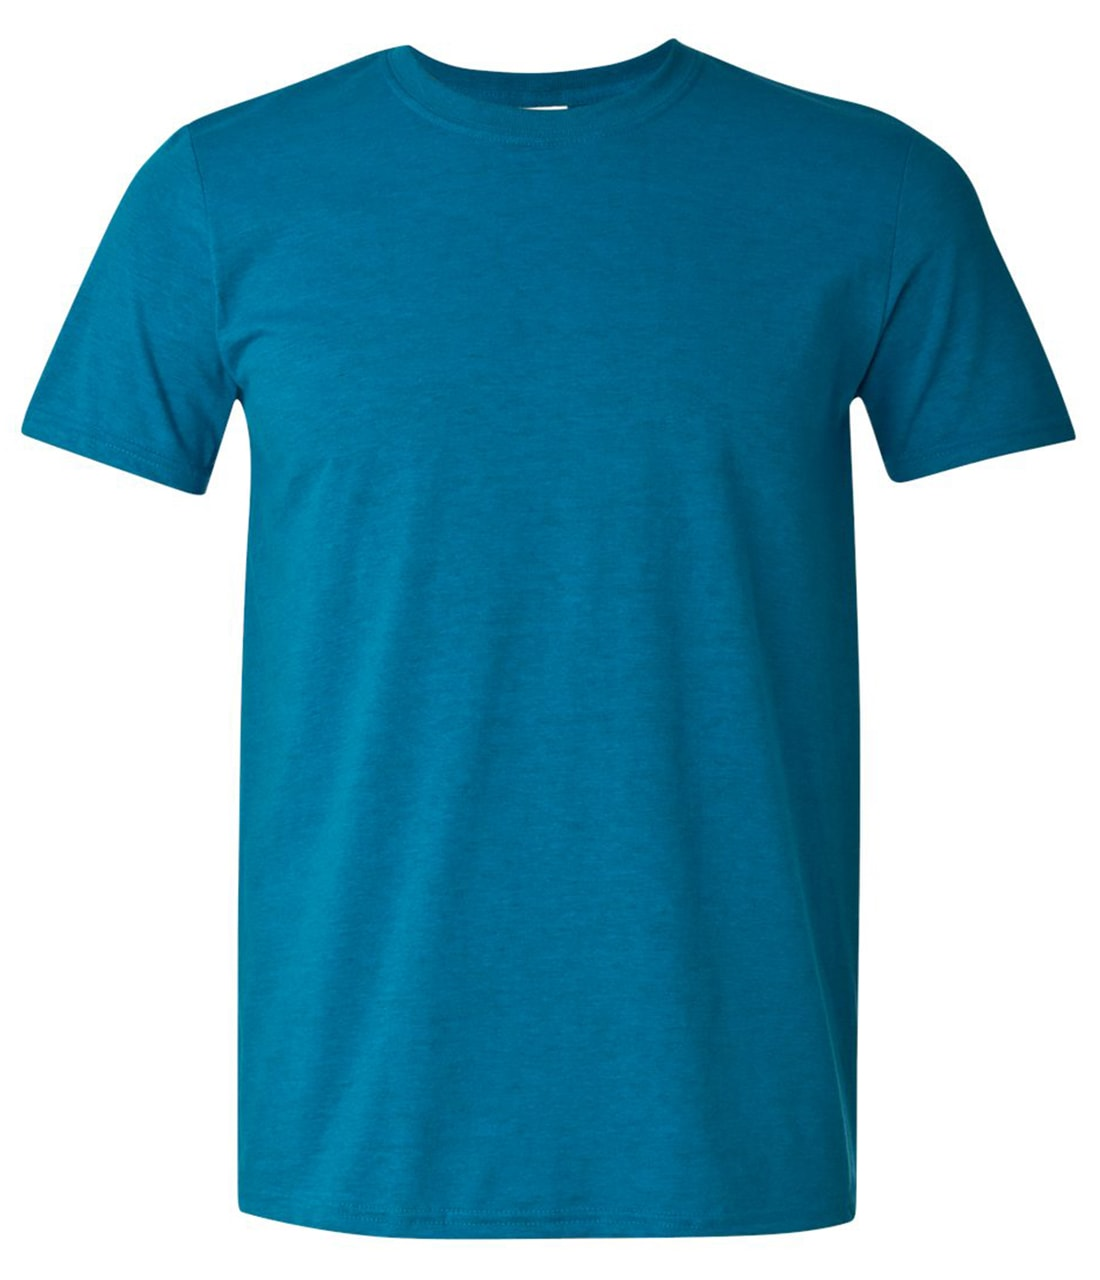 Picture of Gildan Softstyle Ring Spun T-Shirt